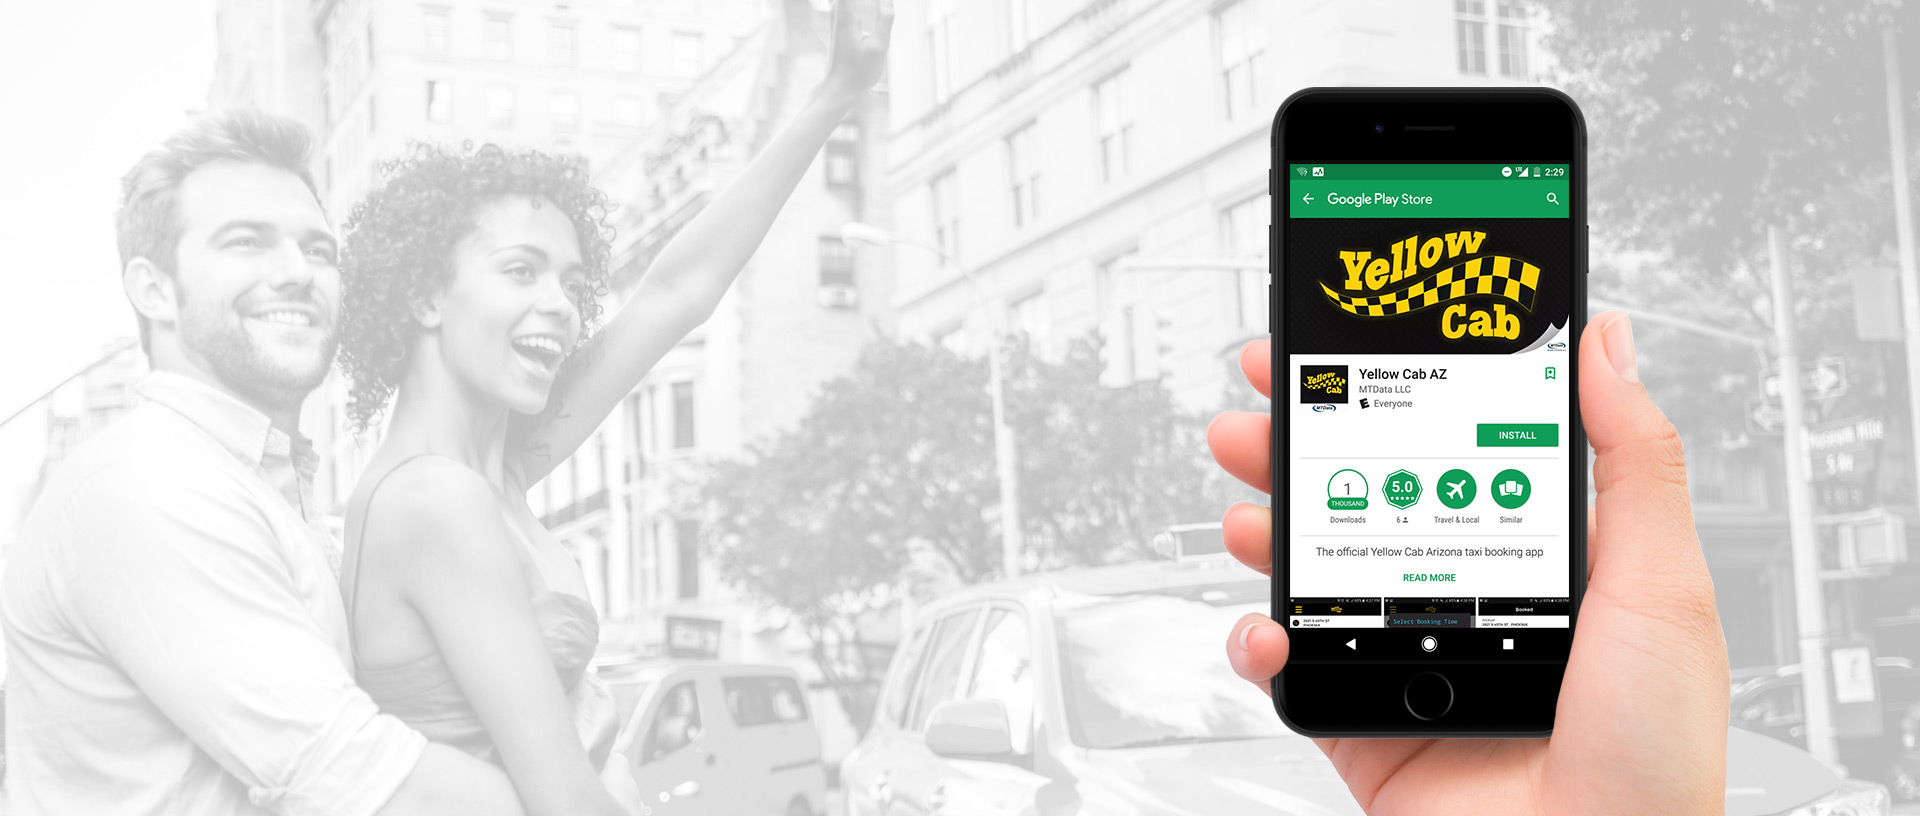 Download the Yellow Cab App